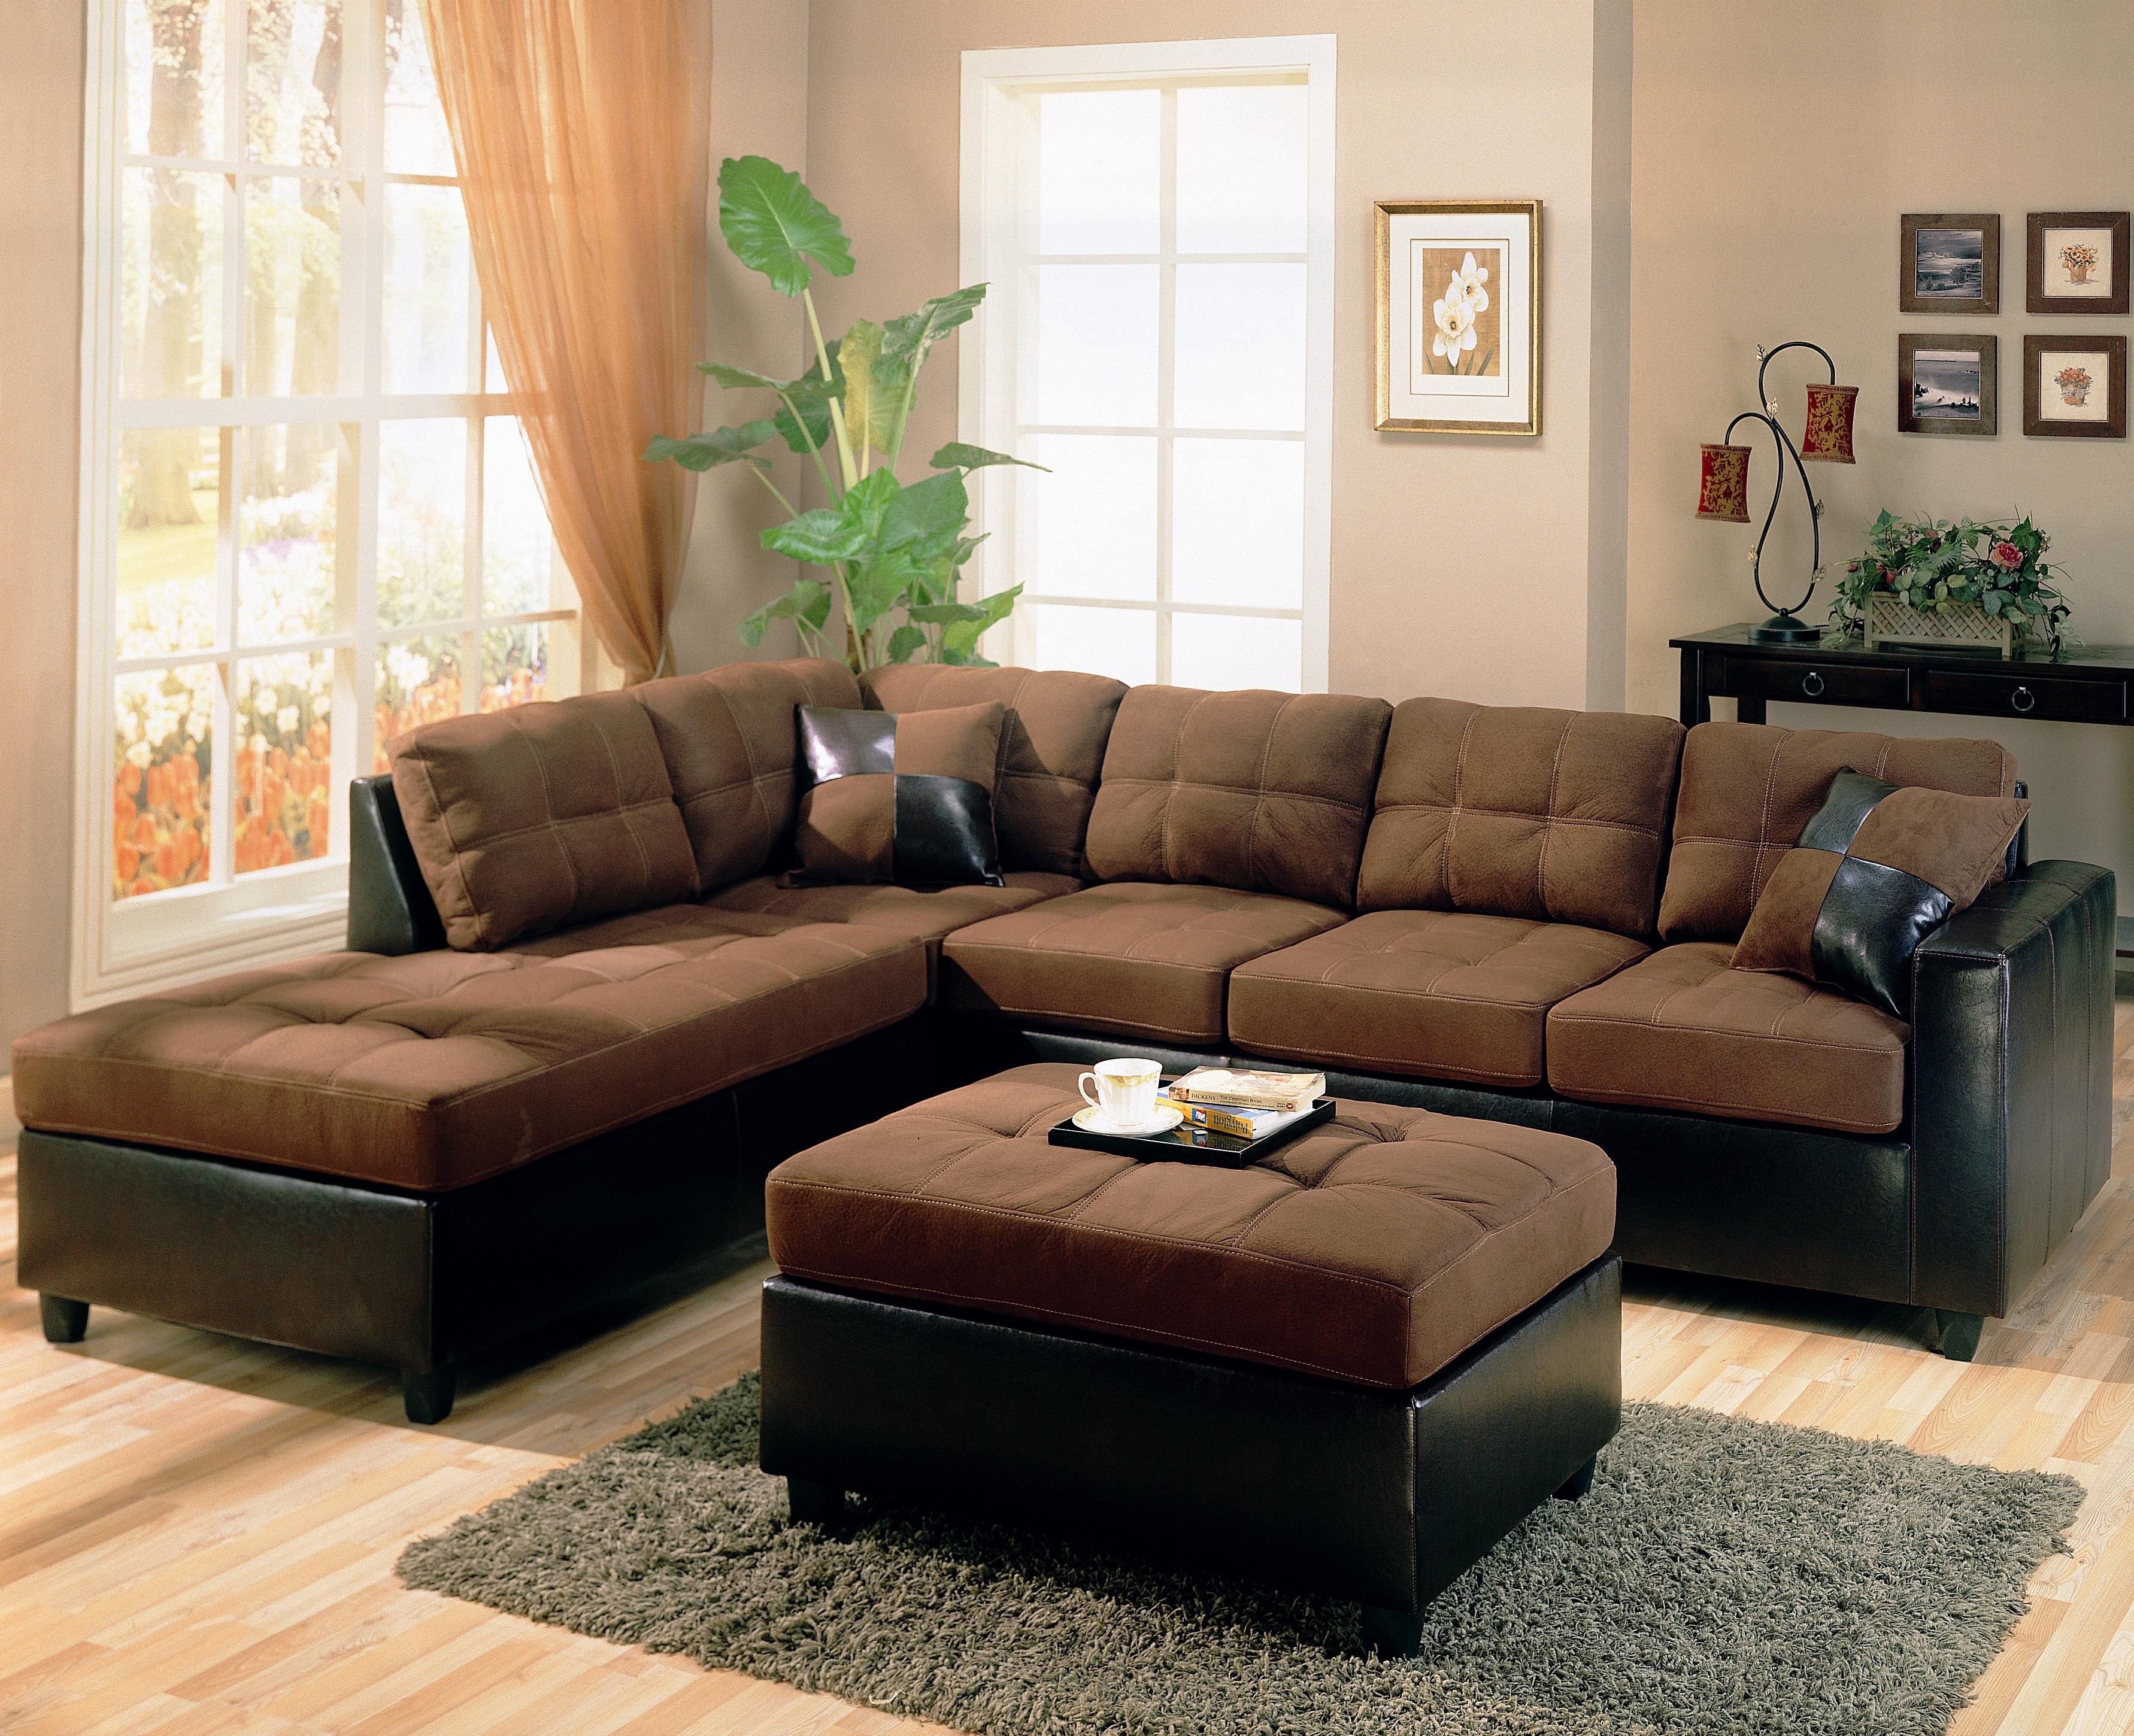 Harlow Contemporary Two Tone Sectional Sofa By Coaster Suburban Furniture Succasunna Morristown Parsippany Morris County Flanders